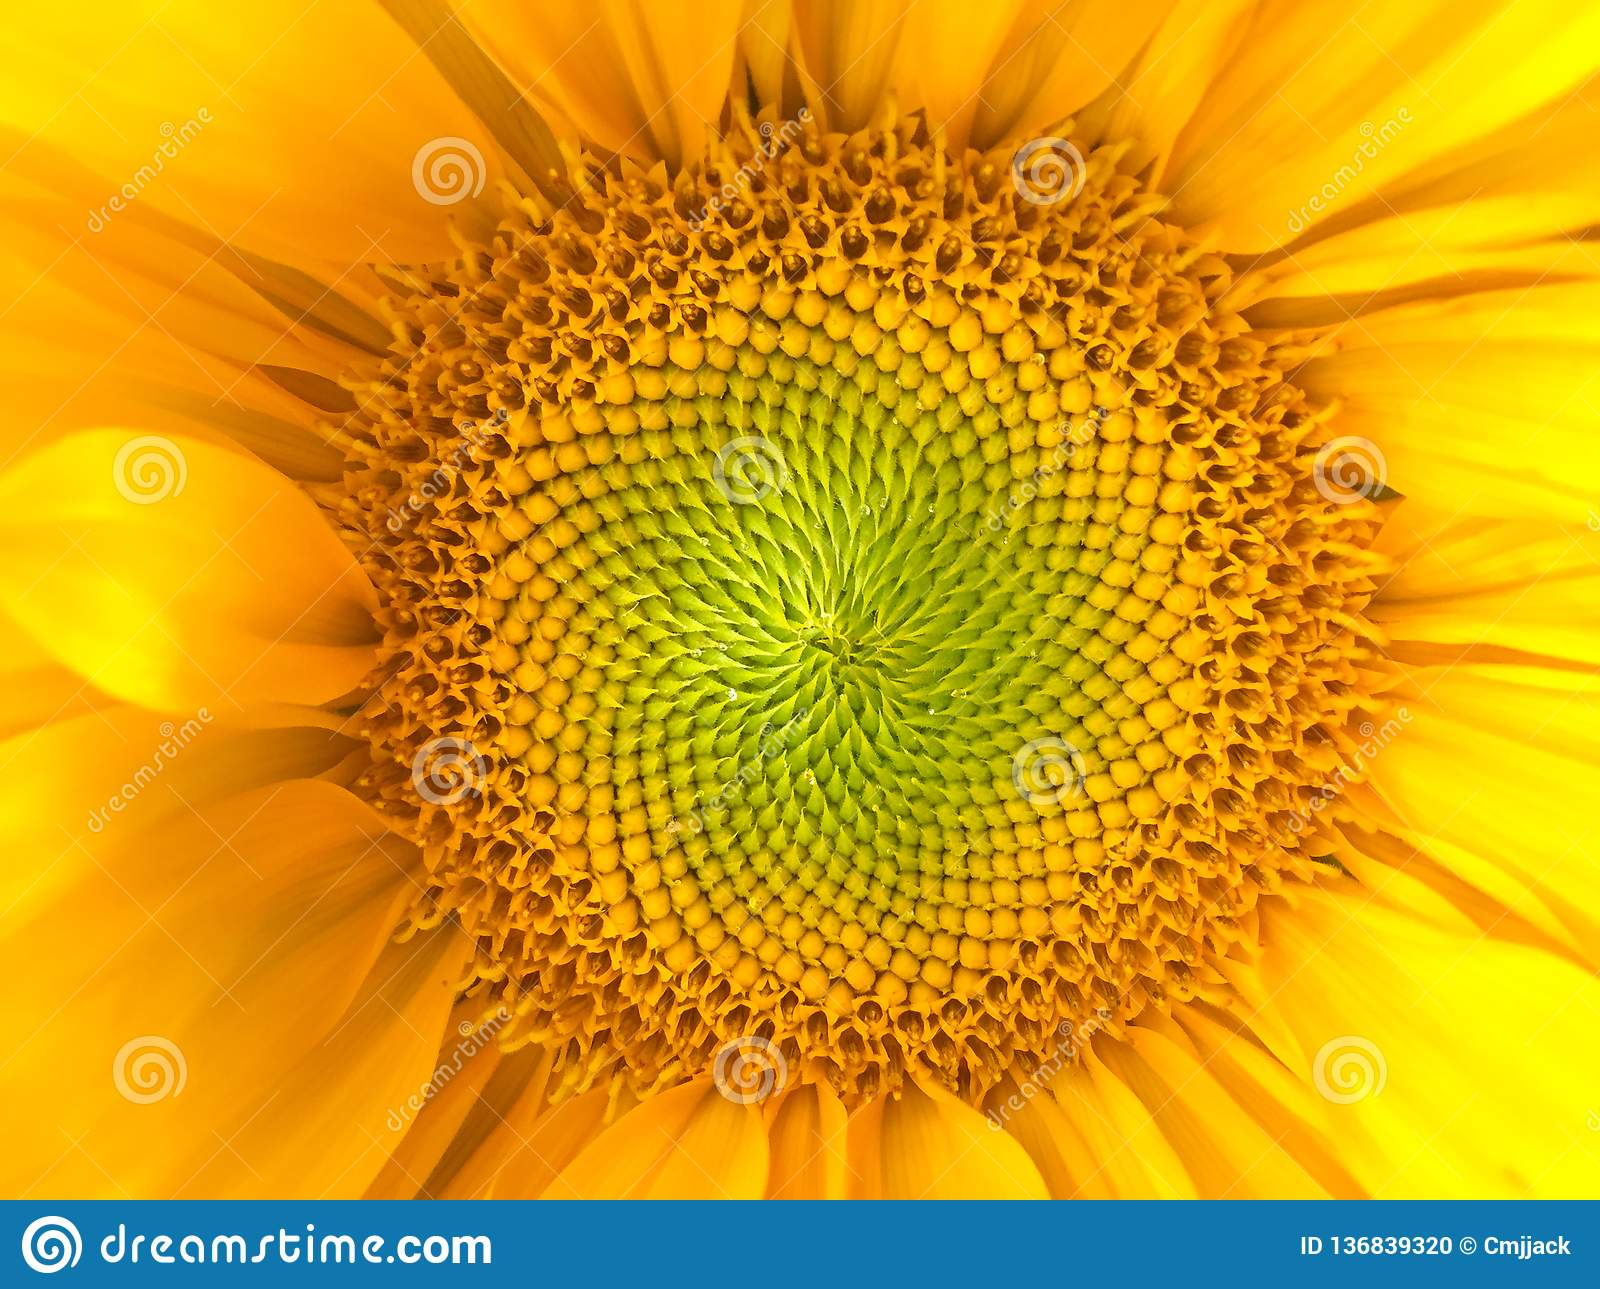 Sunflower natural background. Sunflower blooming. Close-up. Sunflowers symbolize adoration, loyalty and longevity.